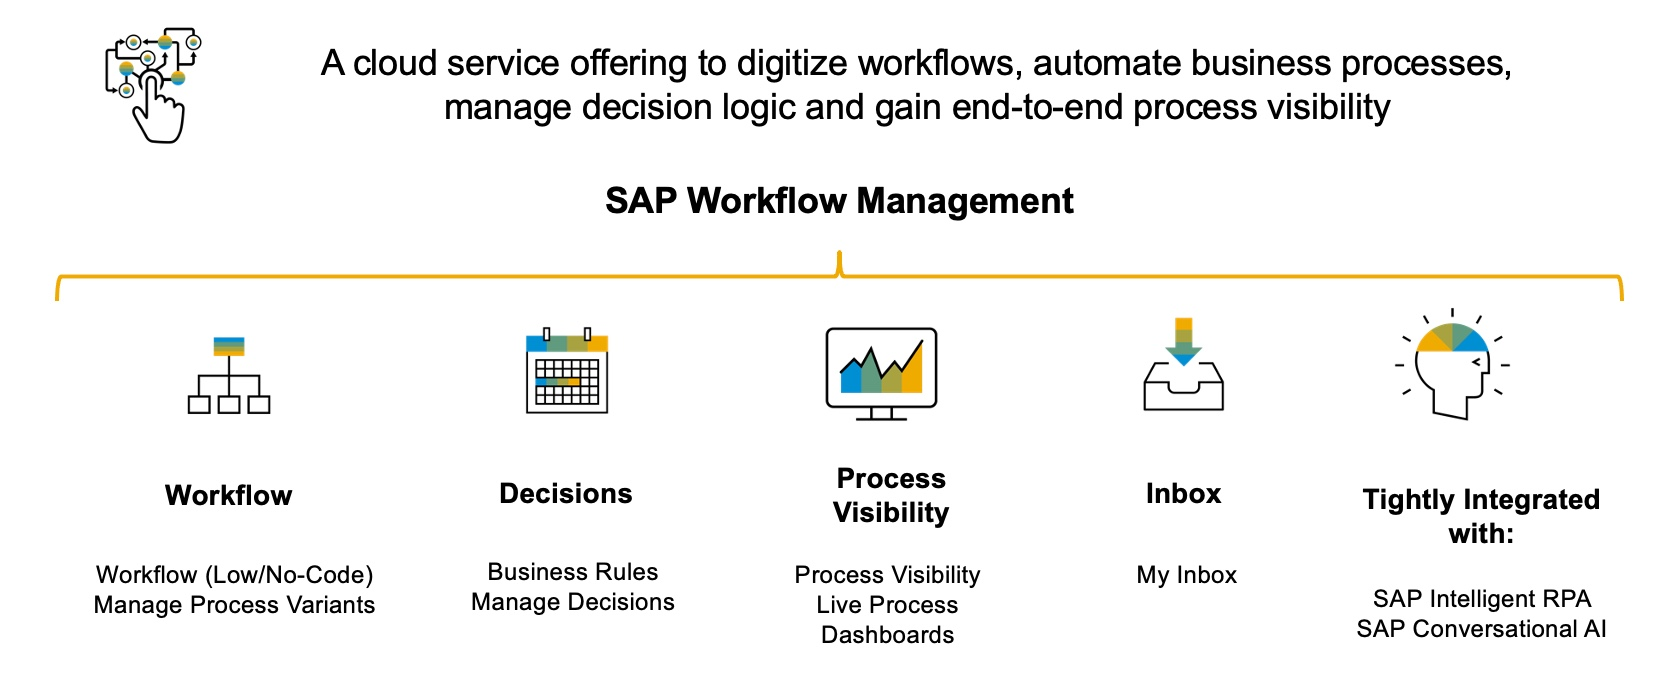 SAP%20Workflow%20Management%20at%20a%20glance